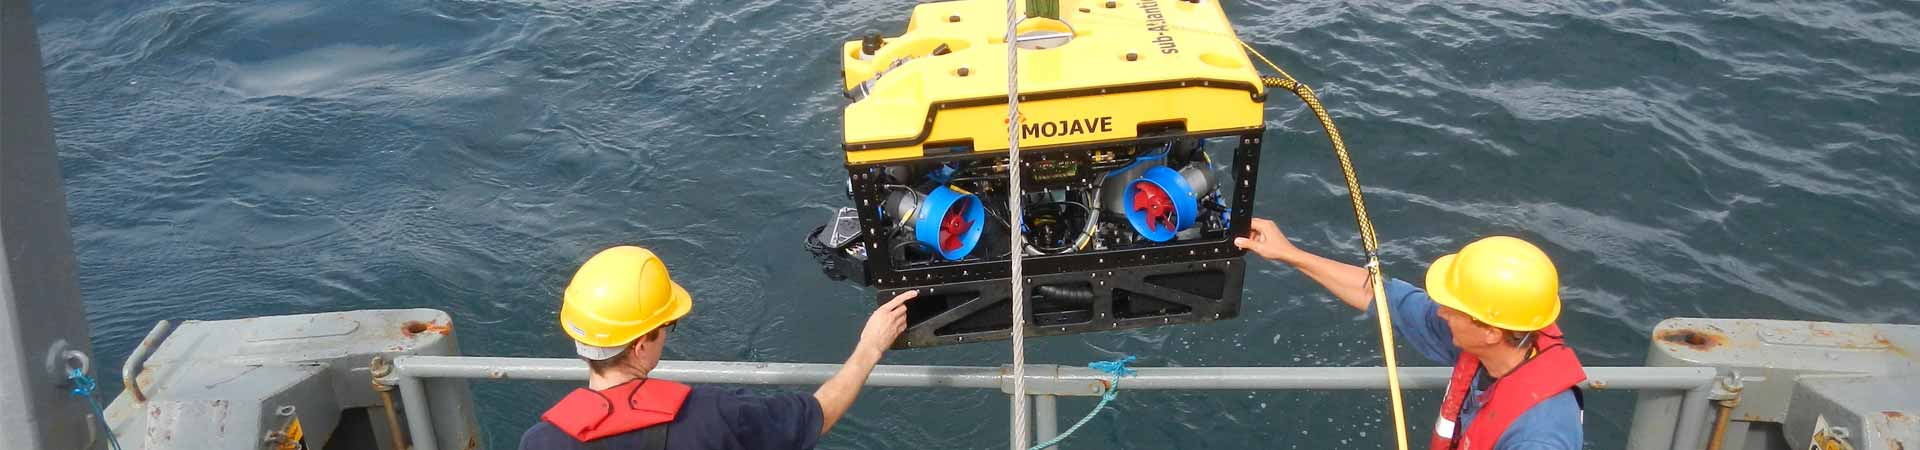 Deploying a remotely operated vehicle (ROV) for testing